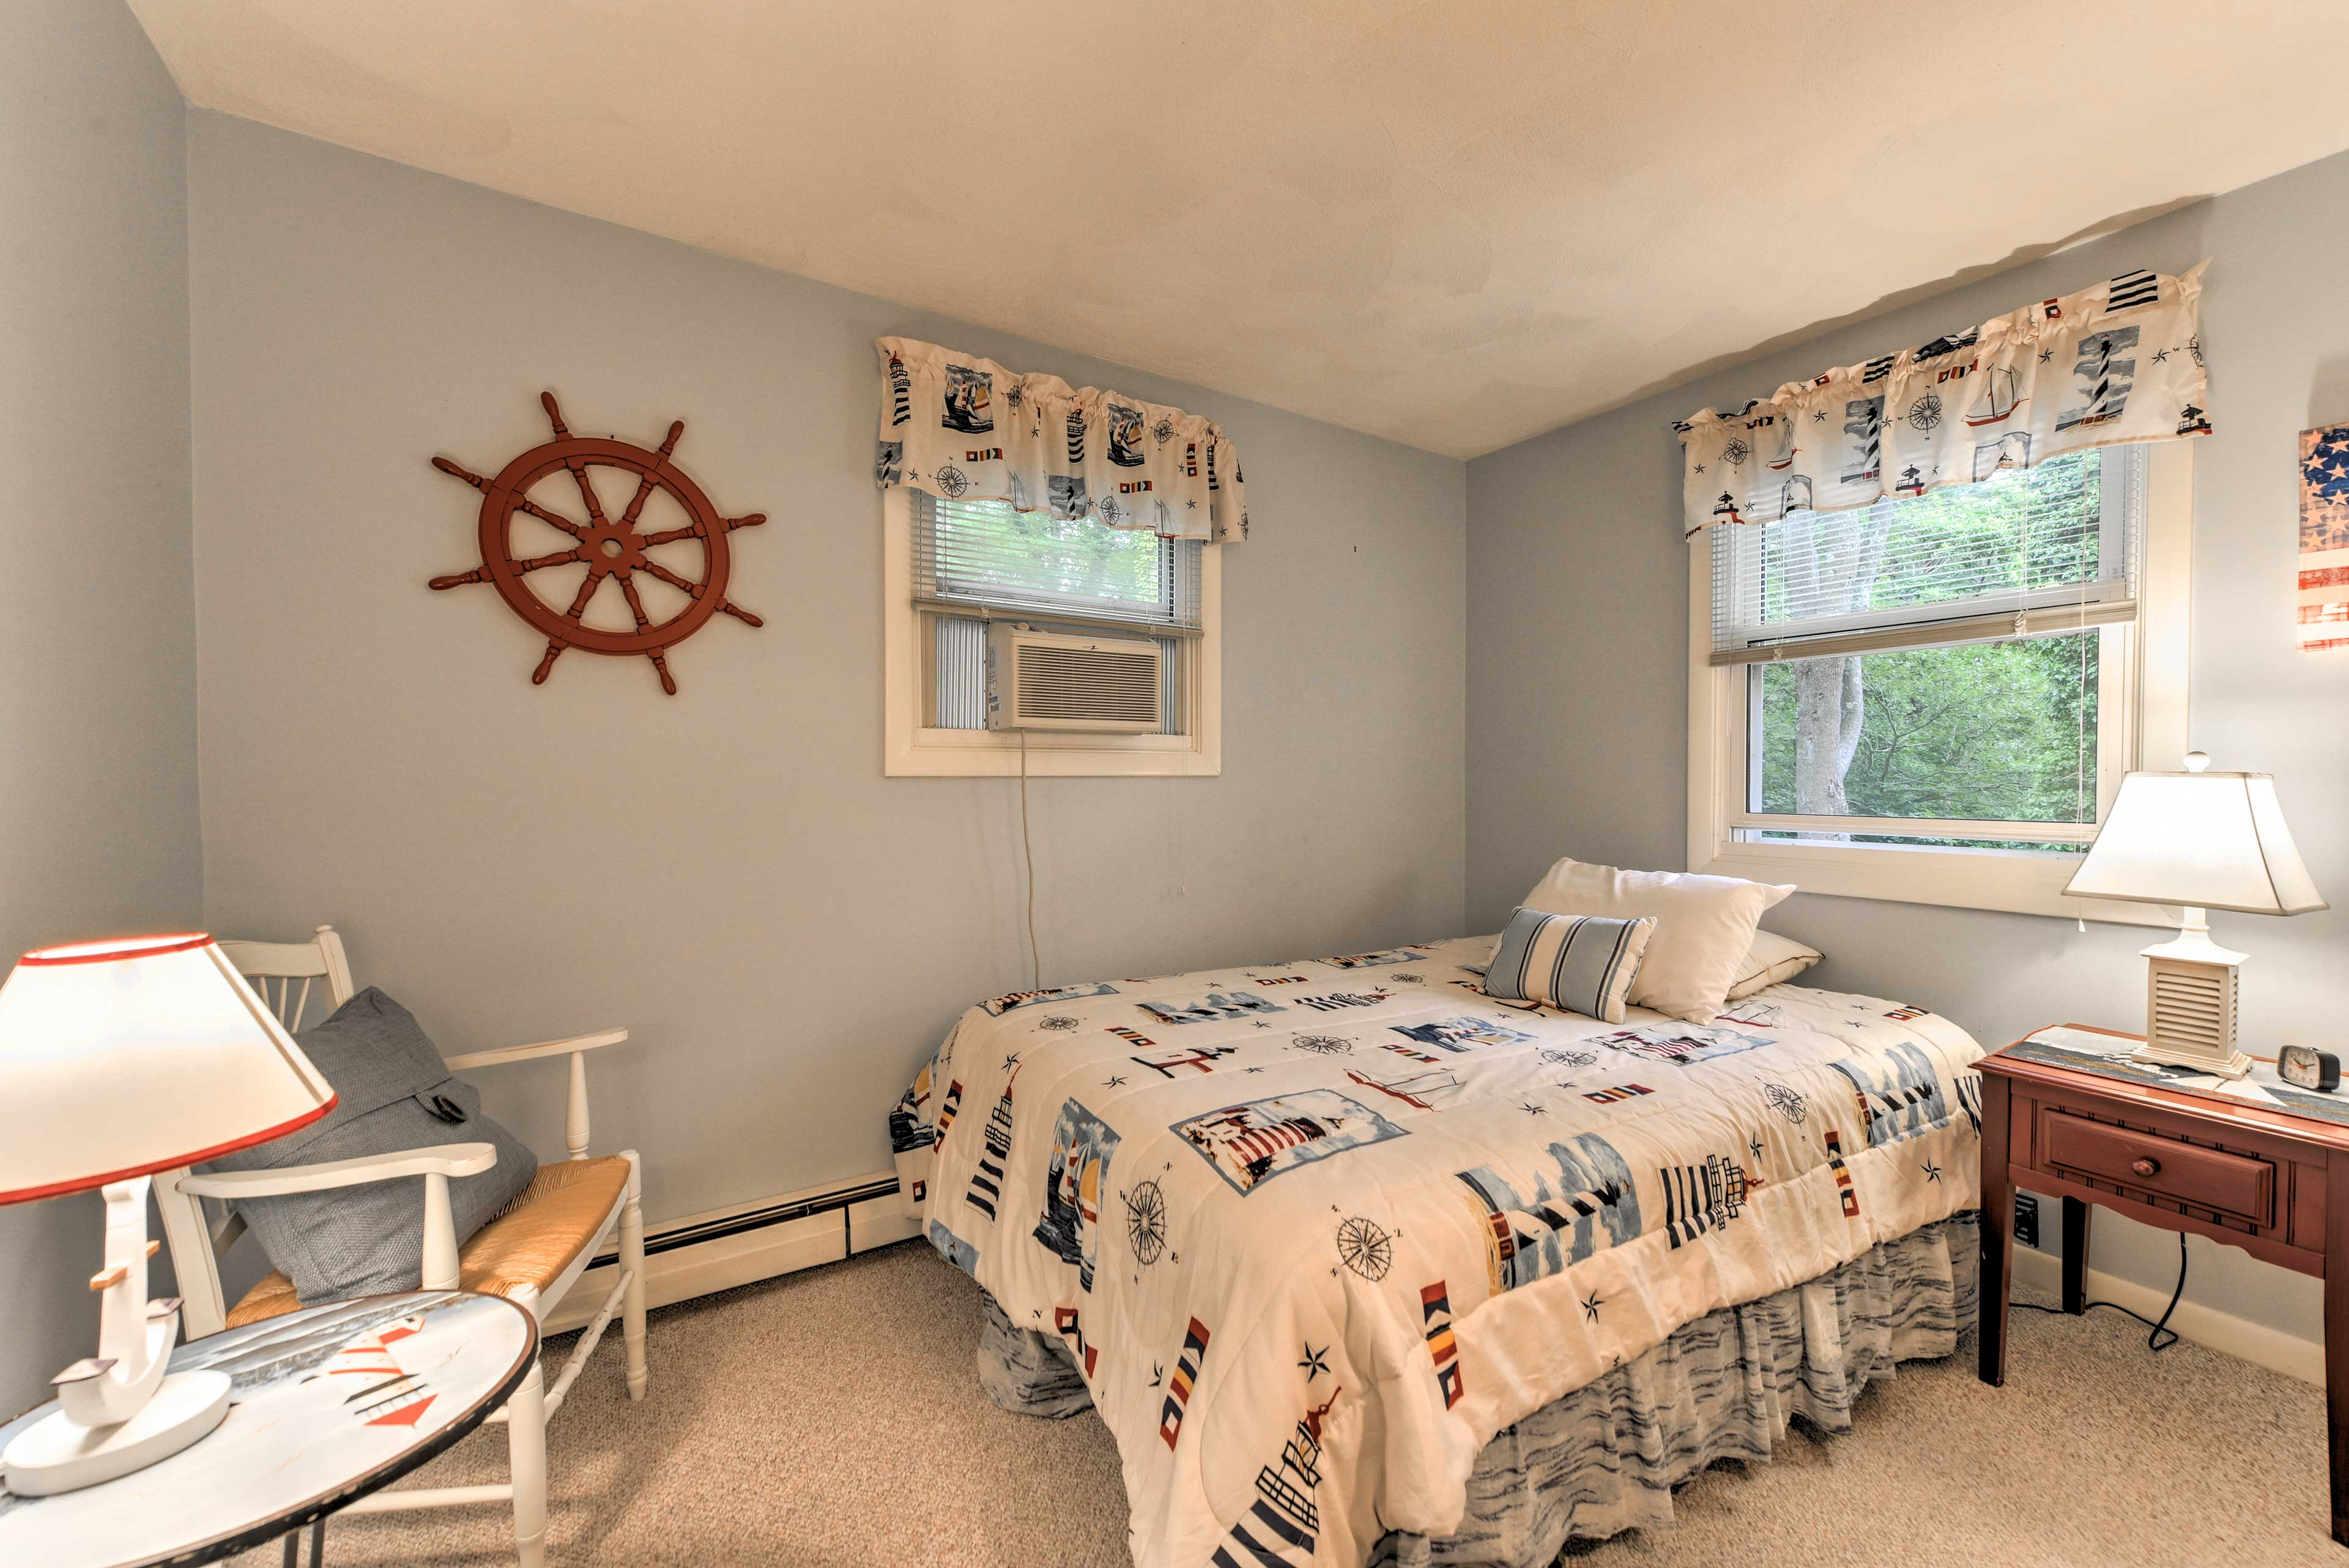 Enjoy restful nights of sleep in this comfortable full bed.